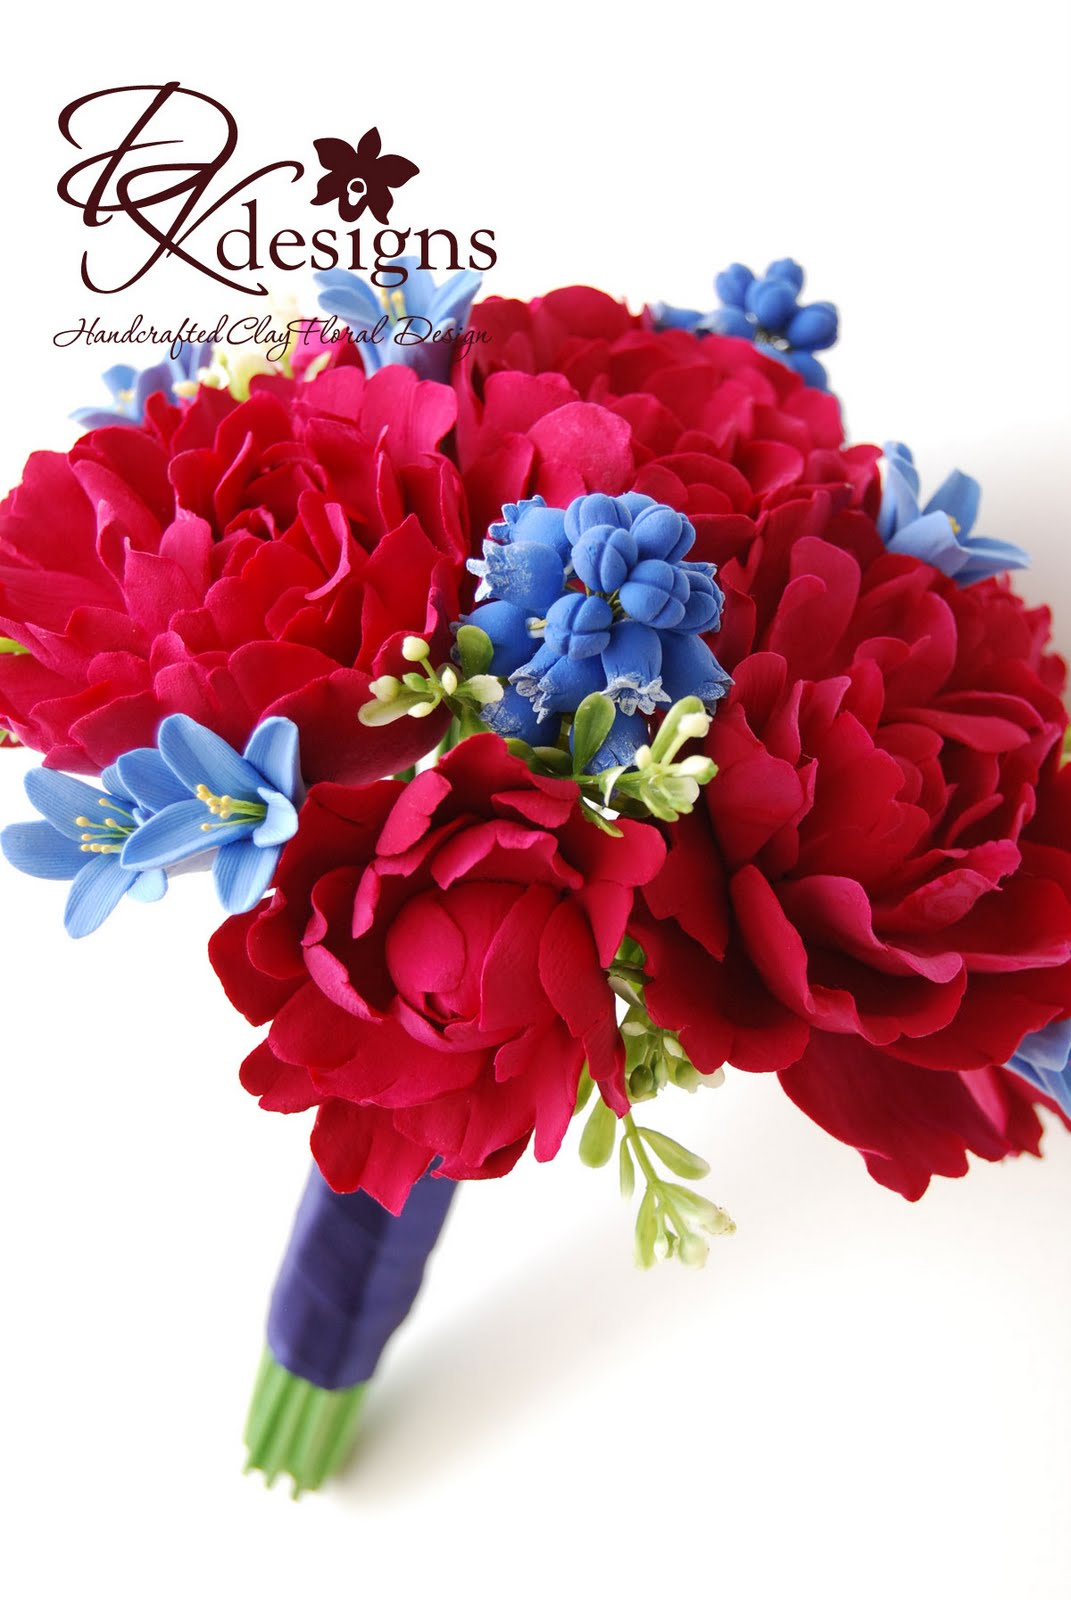 DK Designs: Bridesmaid bouquets, Corsages and Boutonnieres